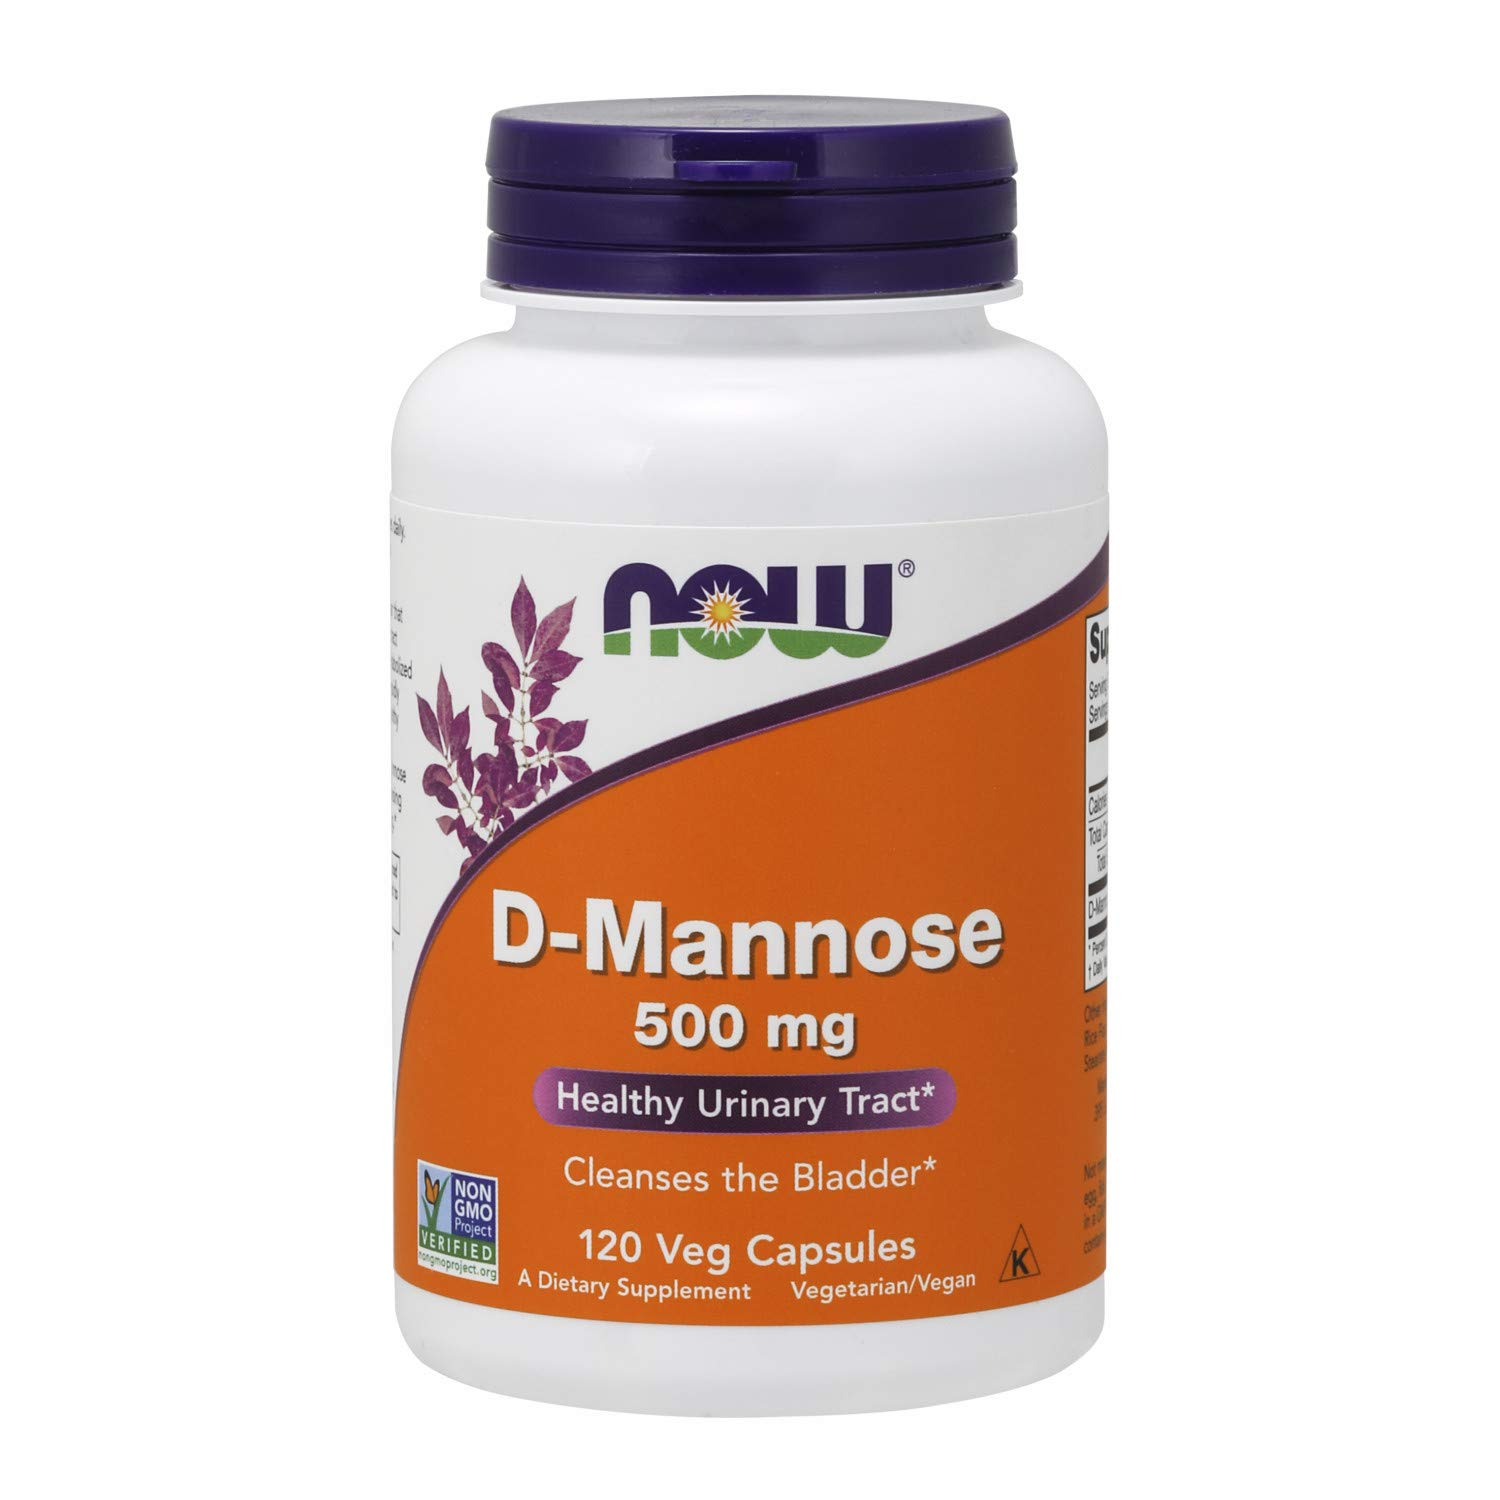 5. Now D-Mannose 500mg